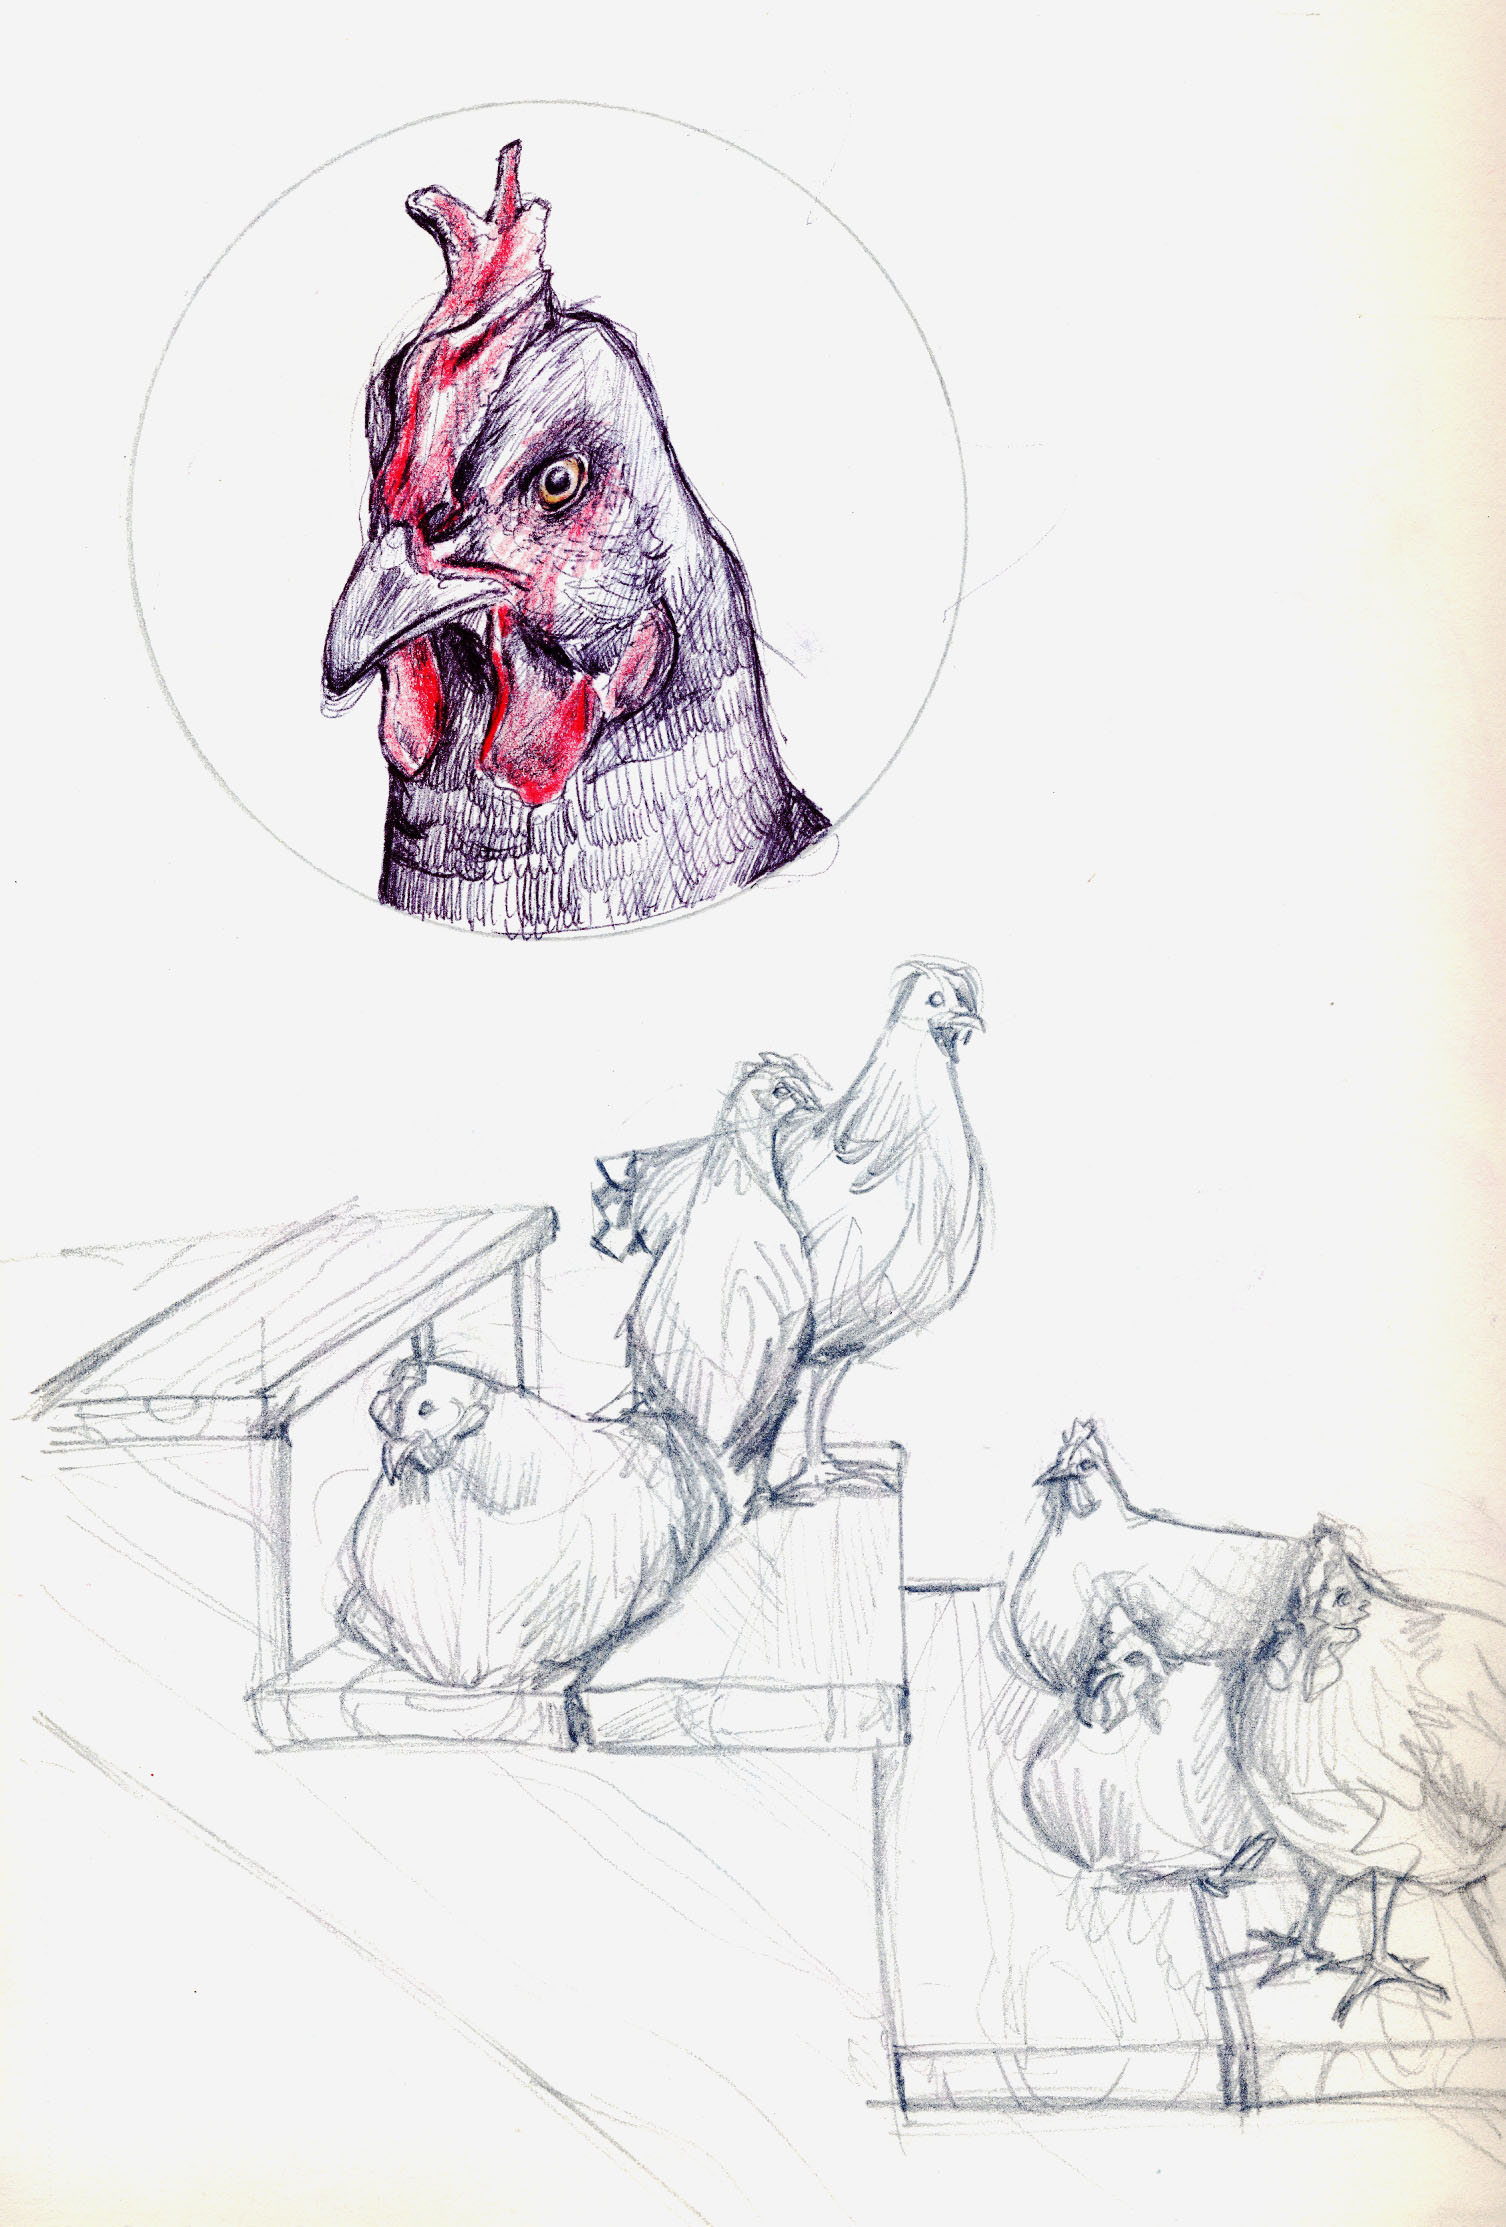 More Chickens